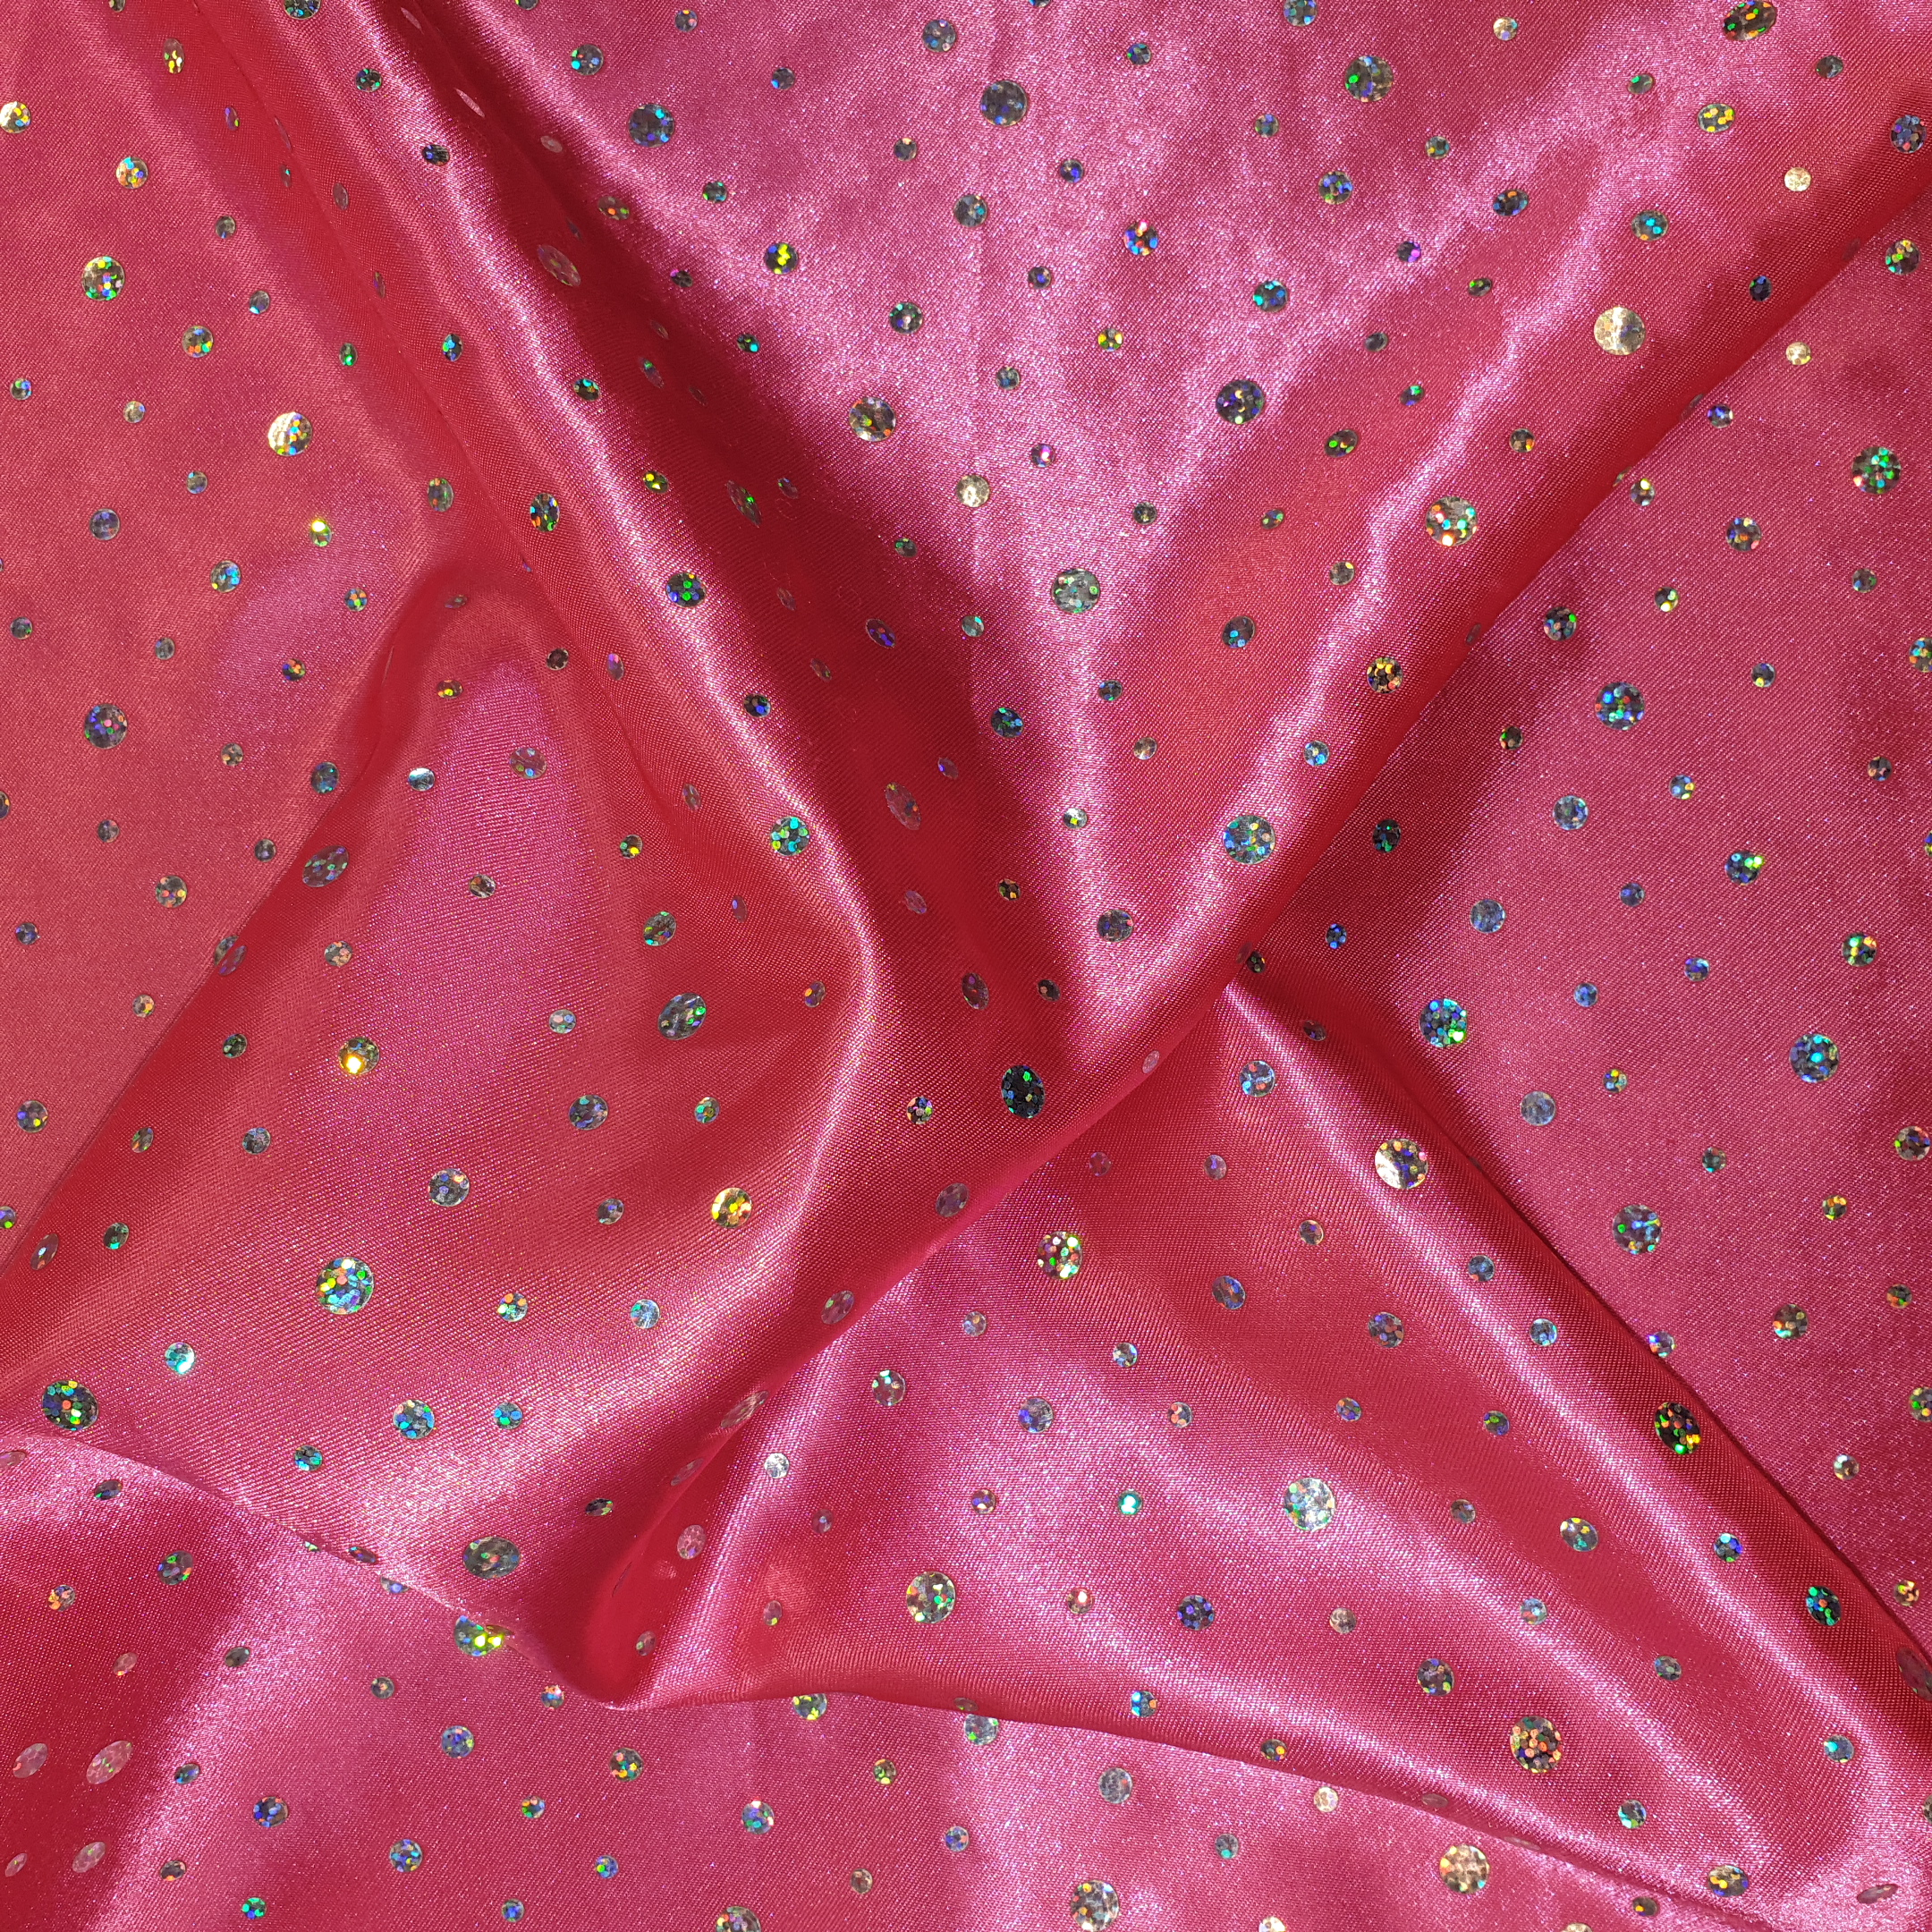 Sequin Satin BRIGHT PINK